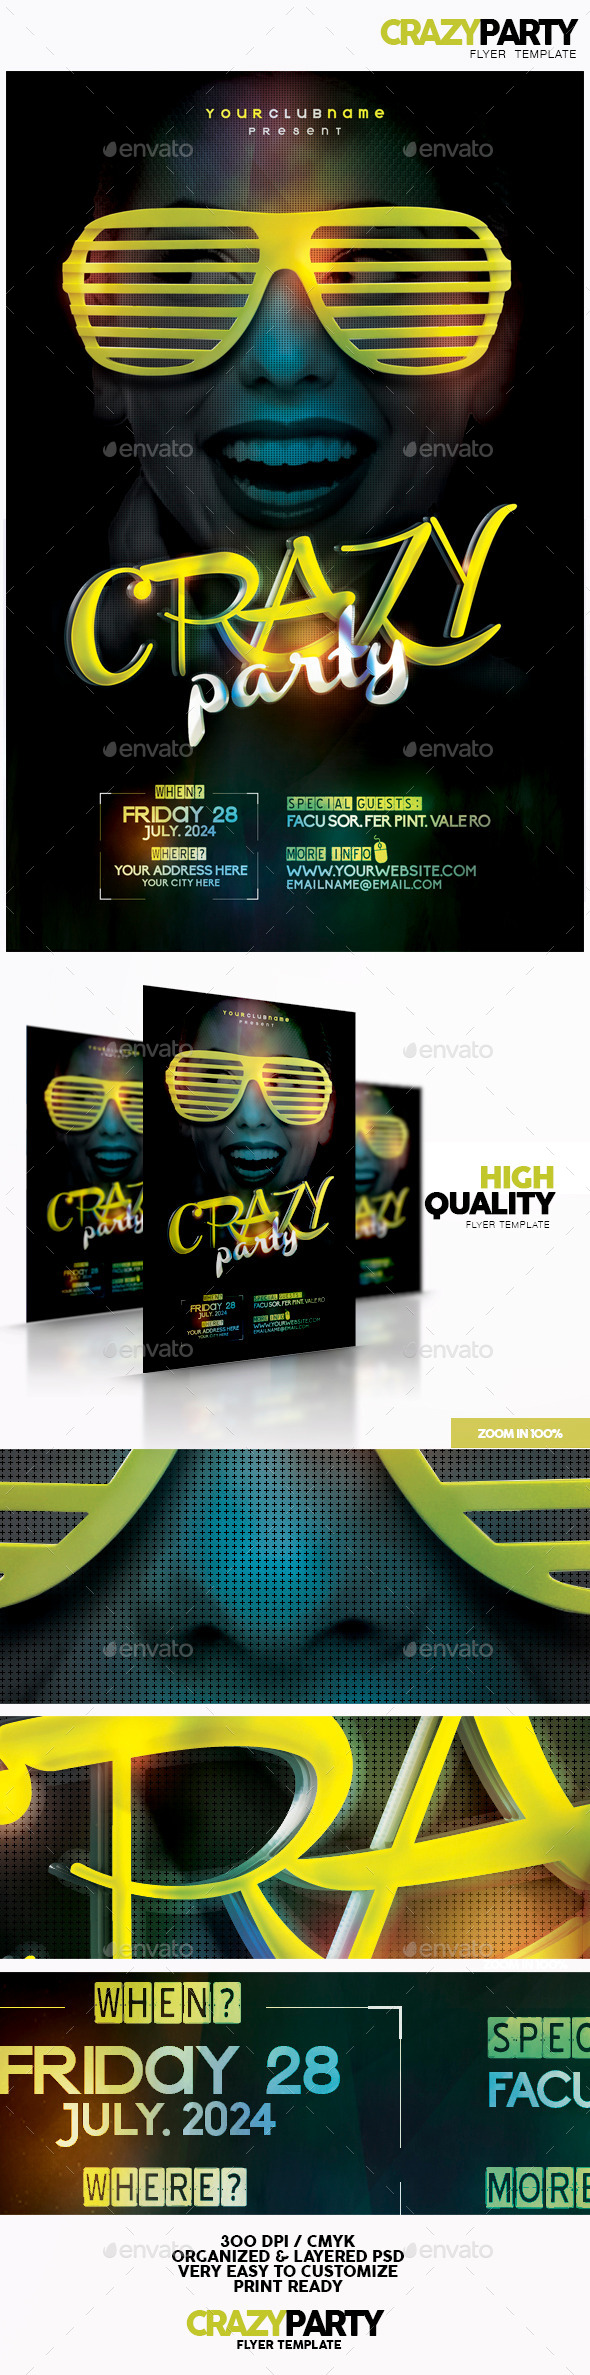 Crazy Party Flyer Template - Flyers Print Templates